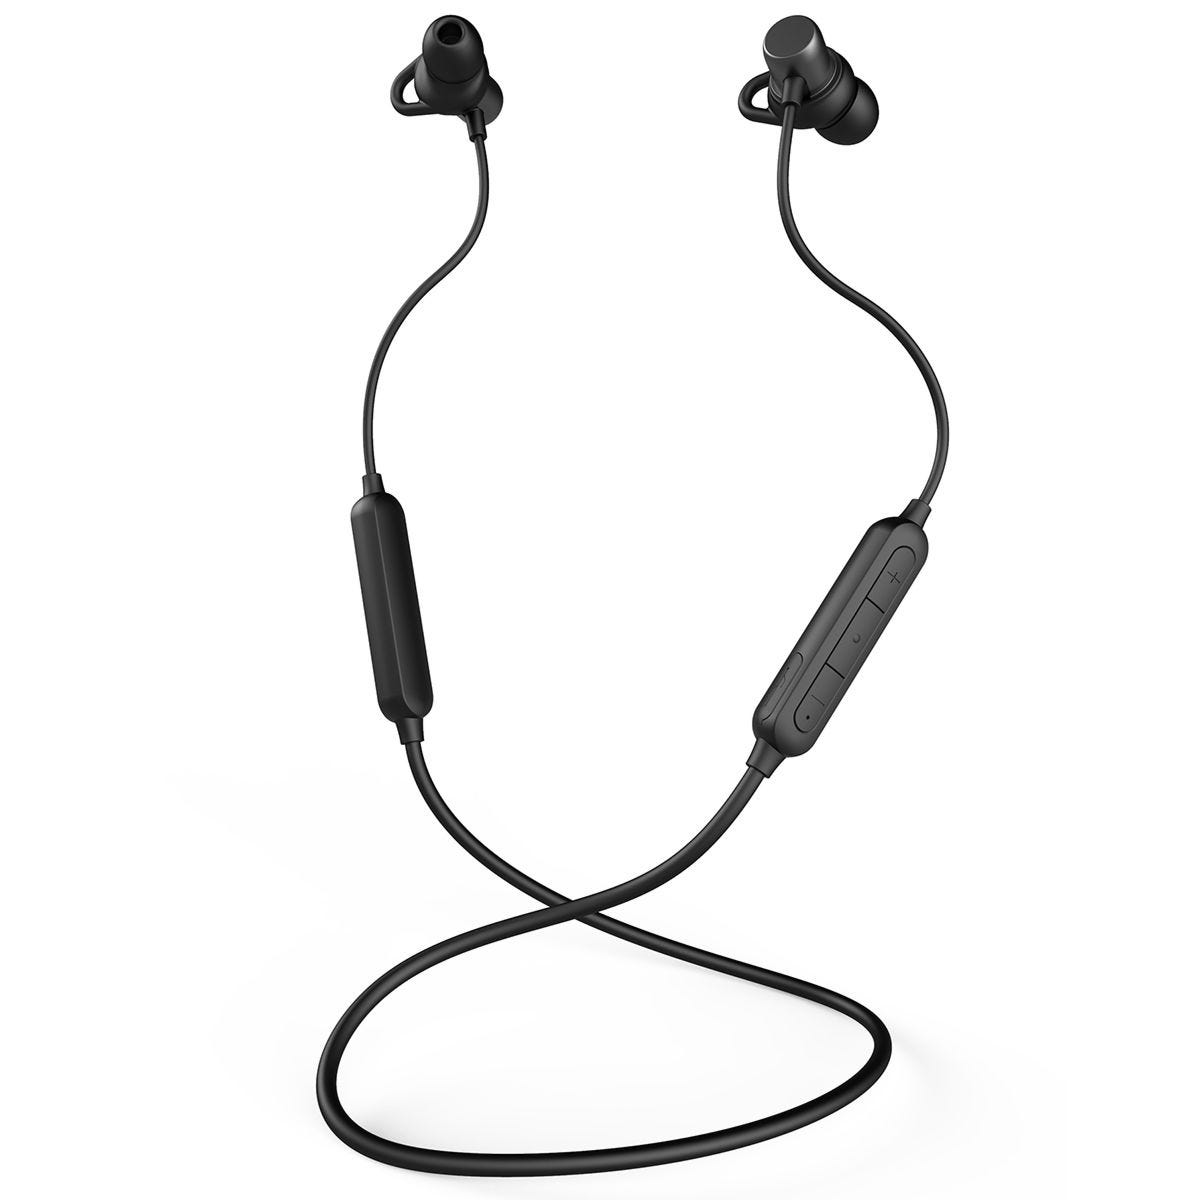 MIXX Play SX Wireless Earphones with Magnetic Back Caps - Black